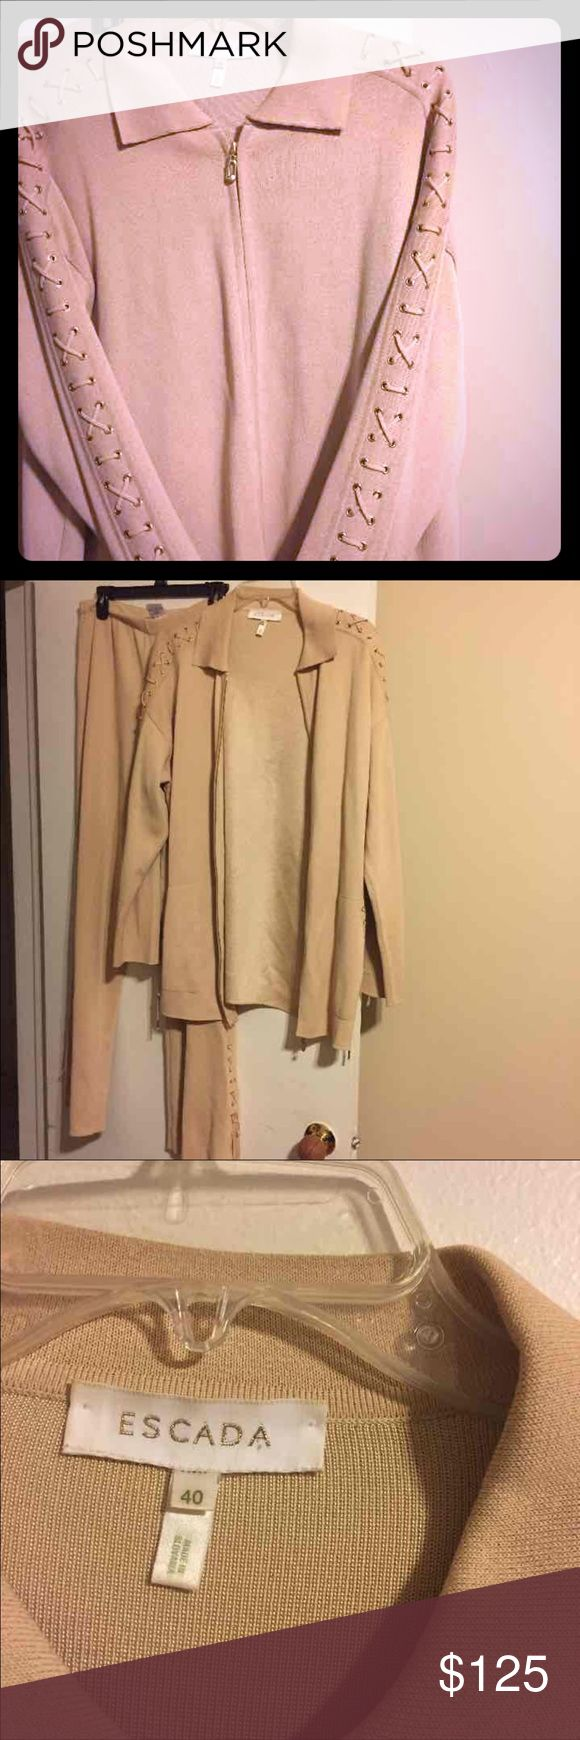 Escada two piece set in neutral color size 40 Escada two piece set in neutral color size 40. Great for so many occasions. Can be dressed up or down perfect for graduation or showers. Escada Pants Trousers